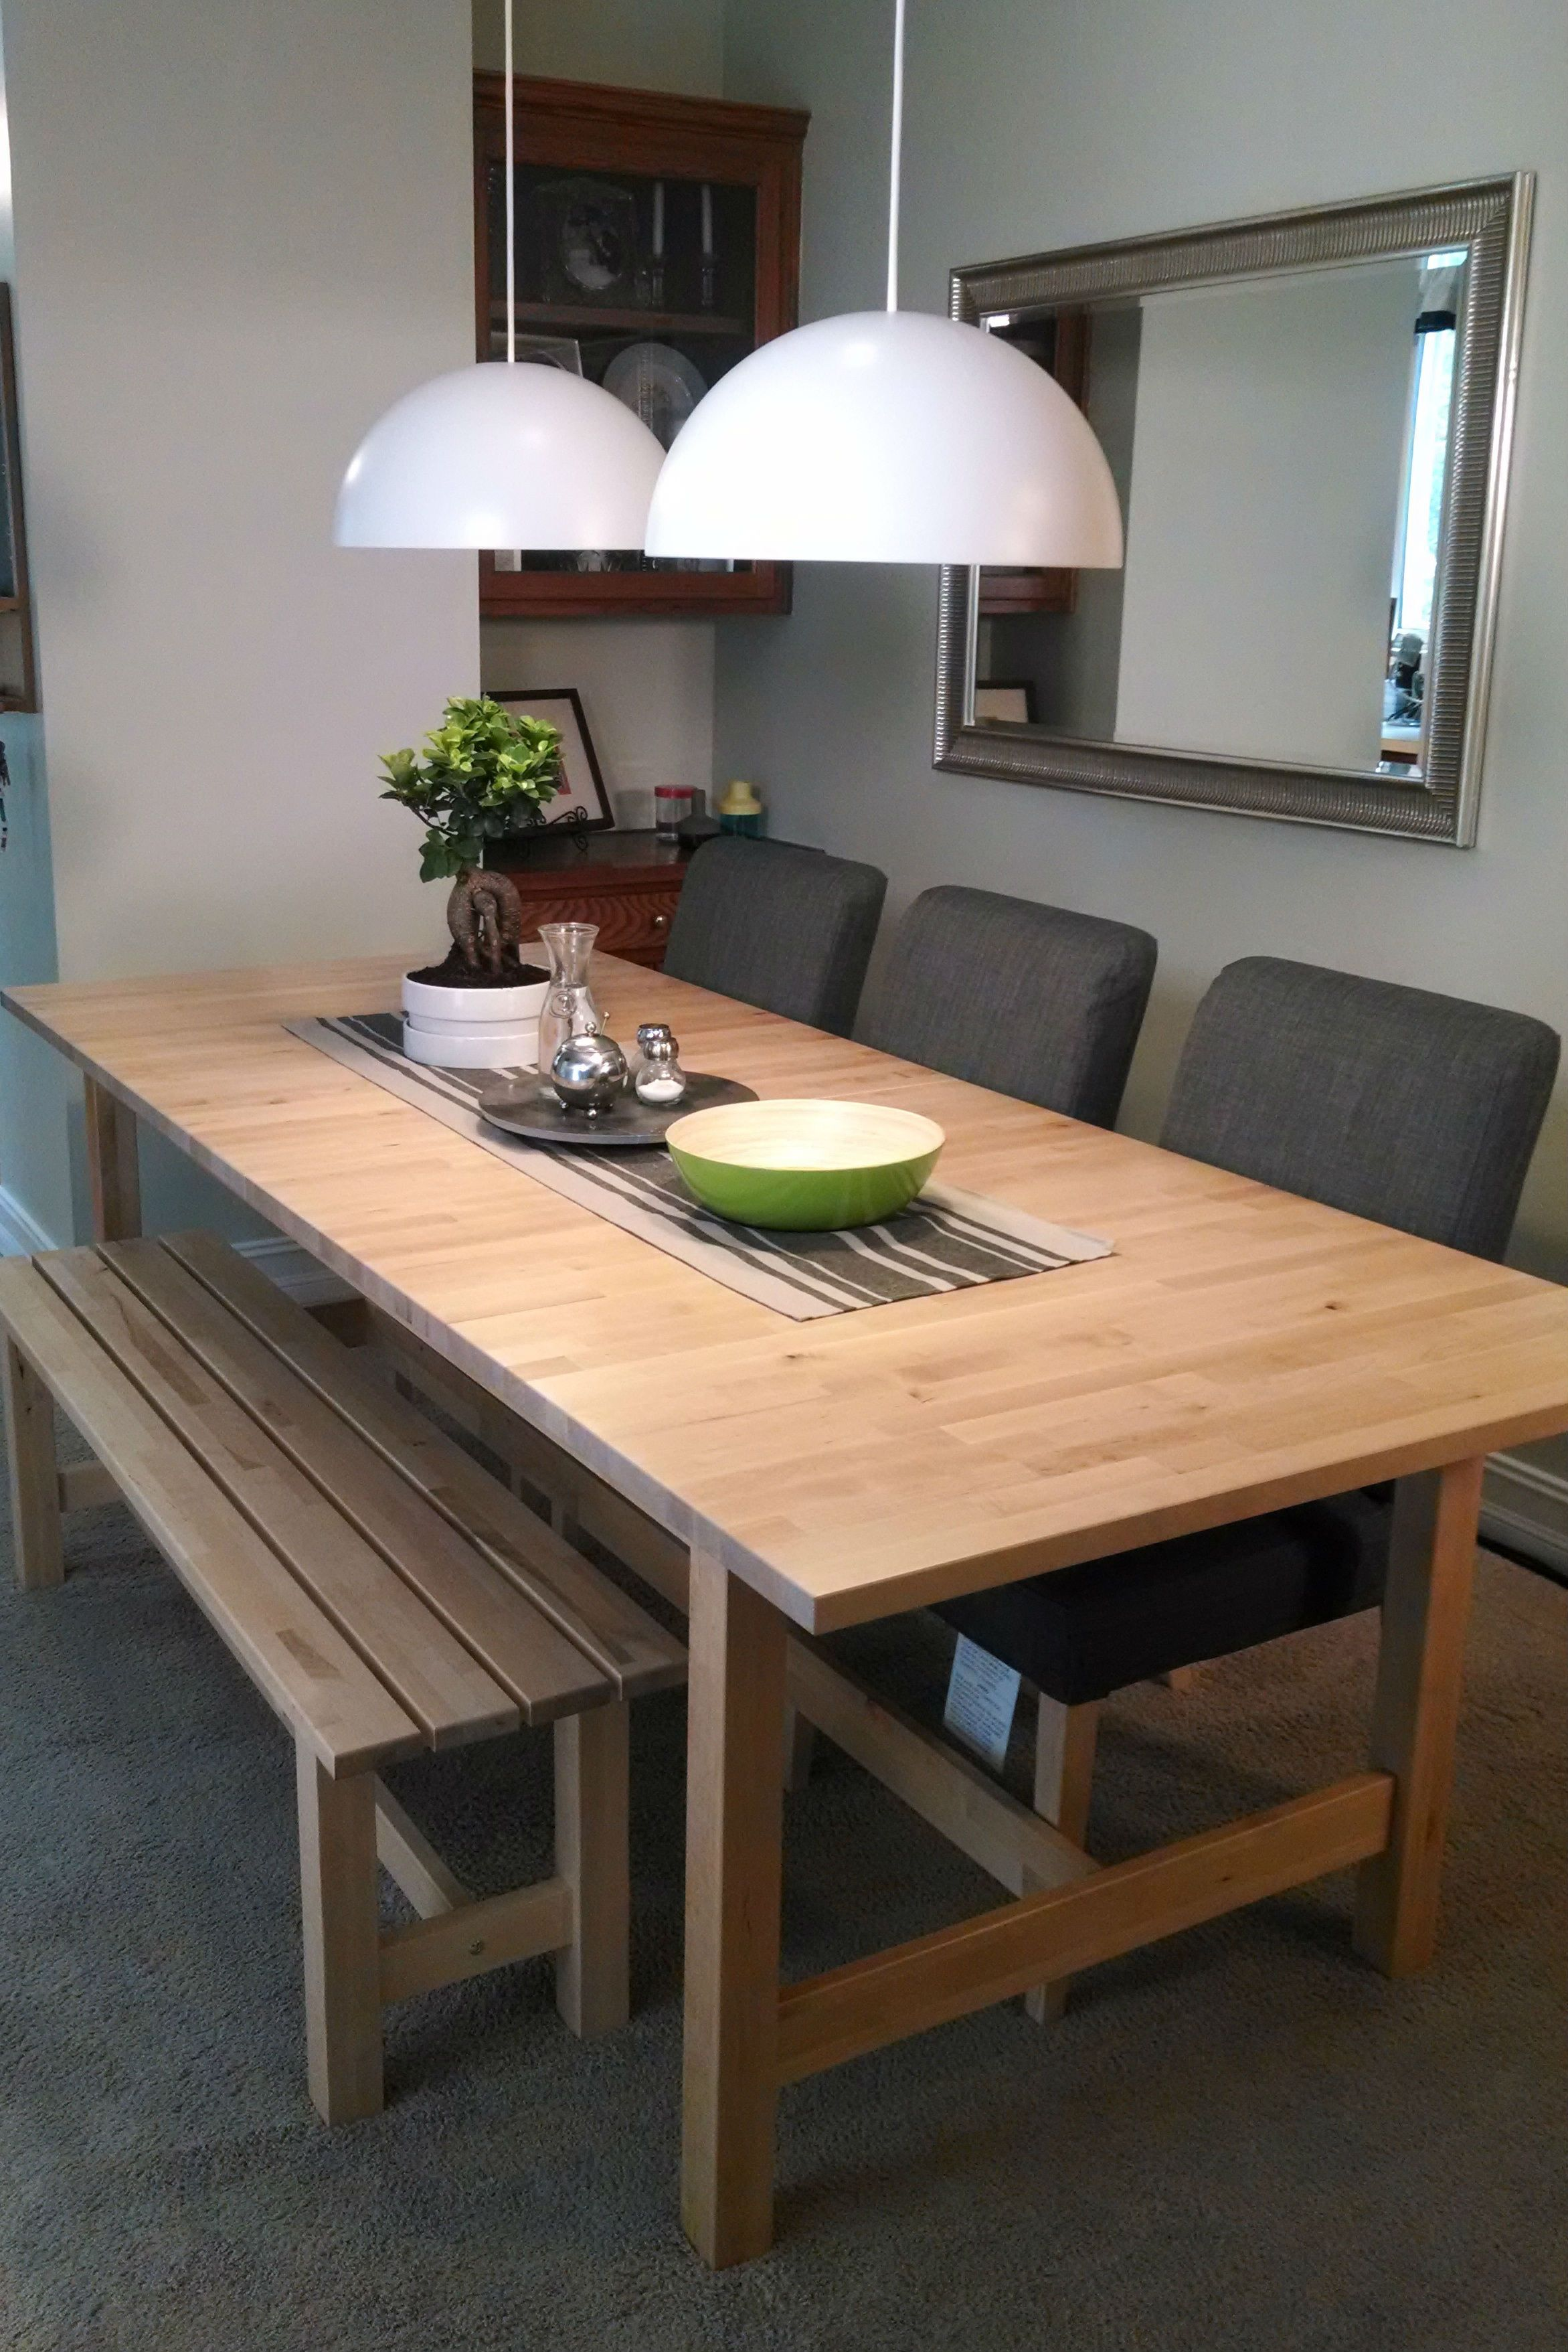 Ikea Table The Solid Birch Construction Of The Norden Dining Table Is A